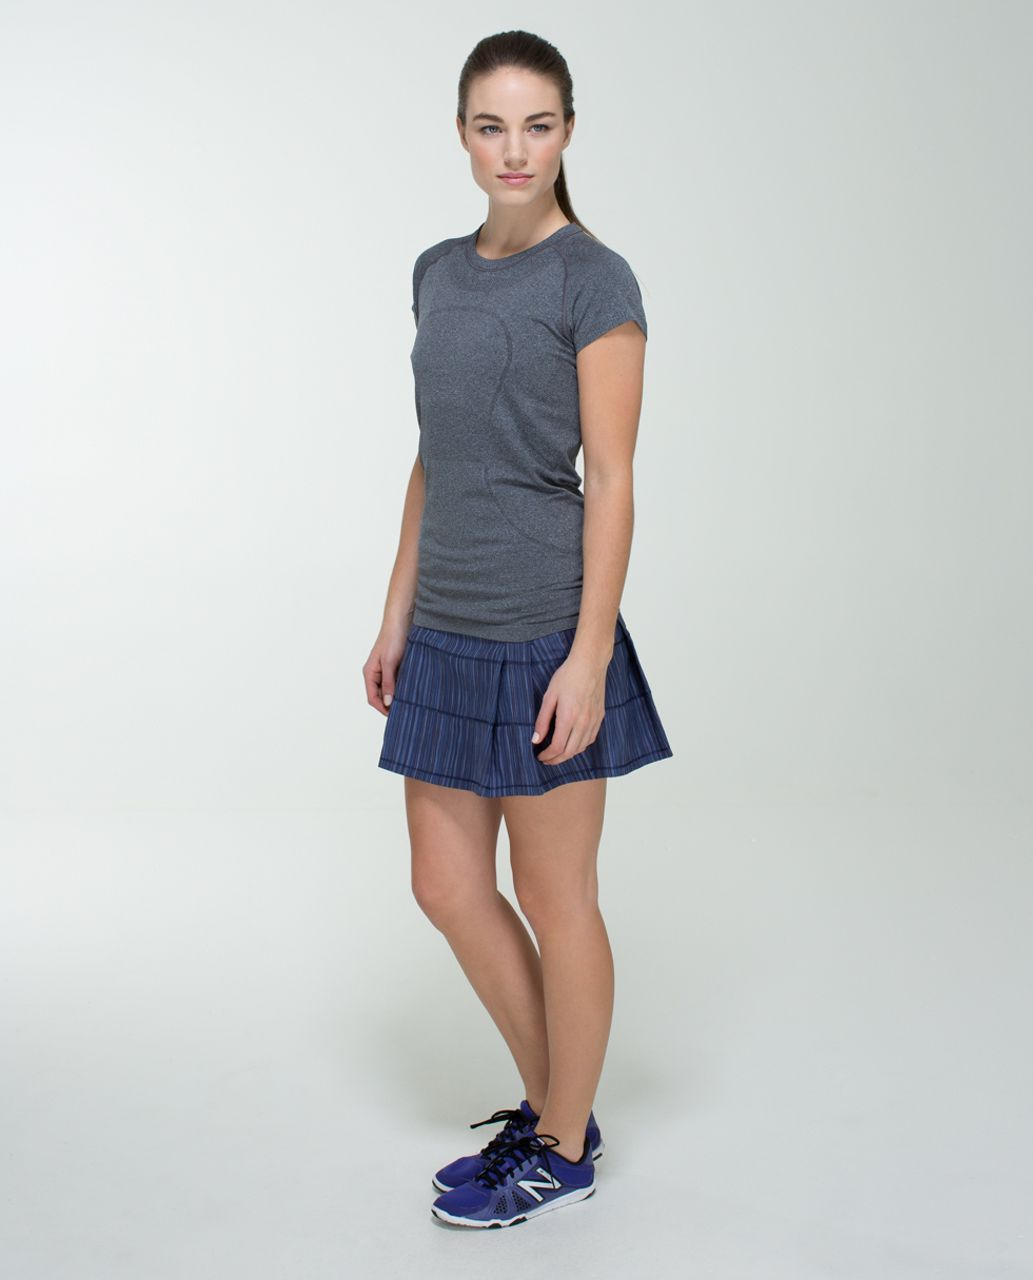 Lululemon Pace Rival Skirt (Tall) *2-way Stretch - Wee Are From Space Cadet Blue / Cadet Blue